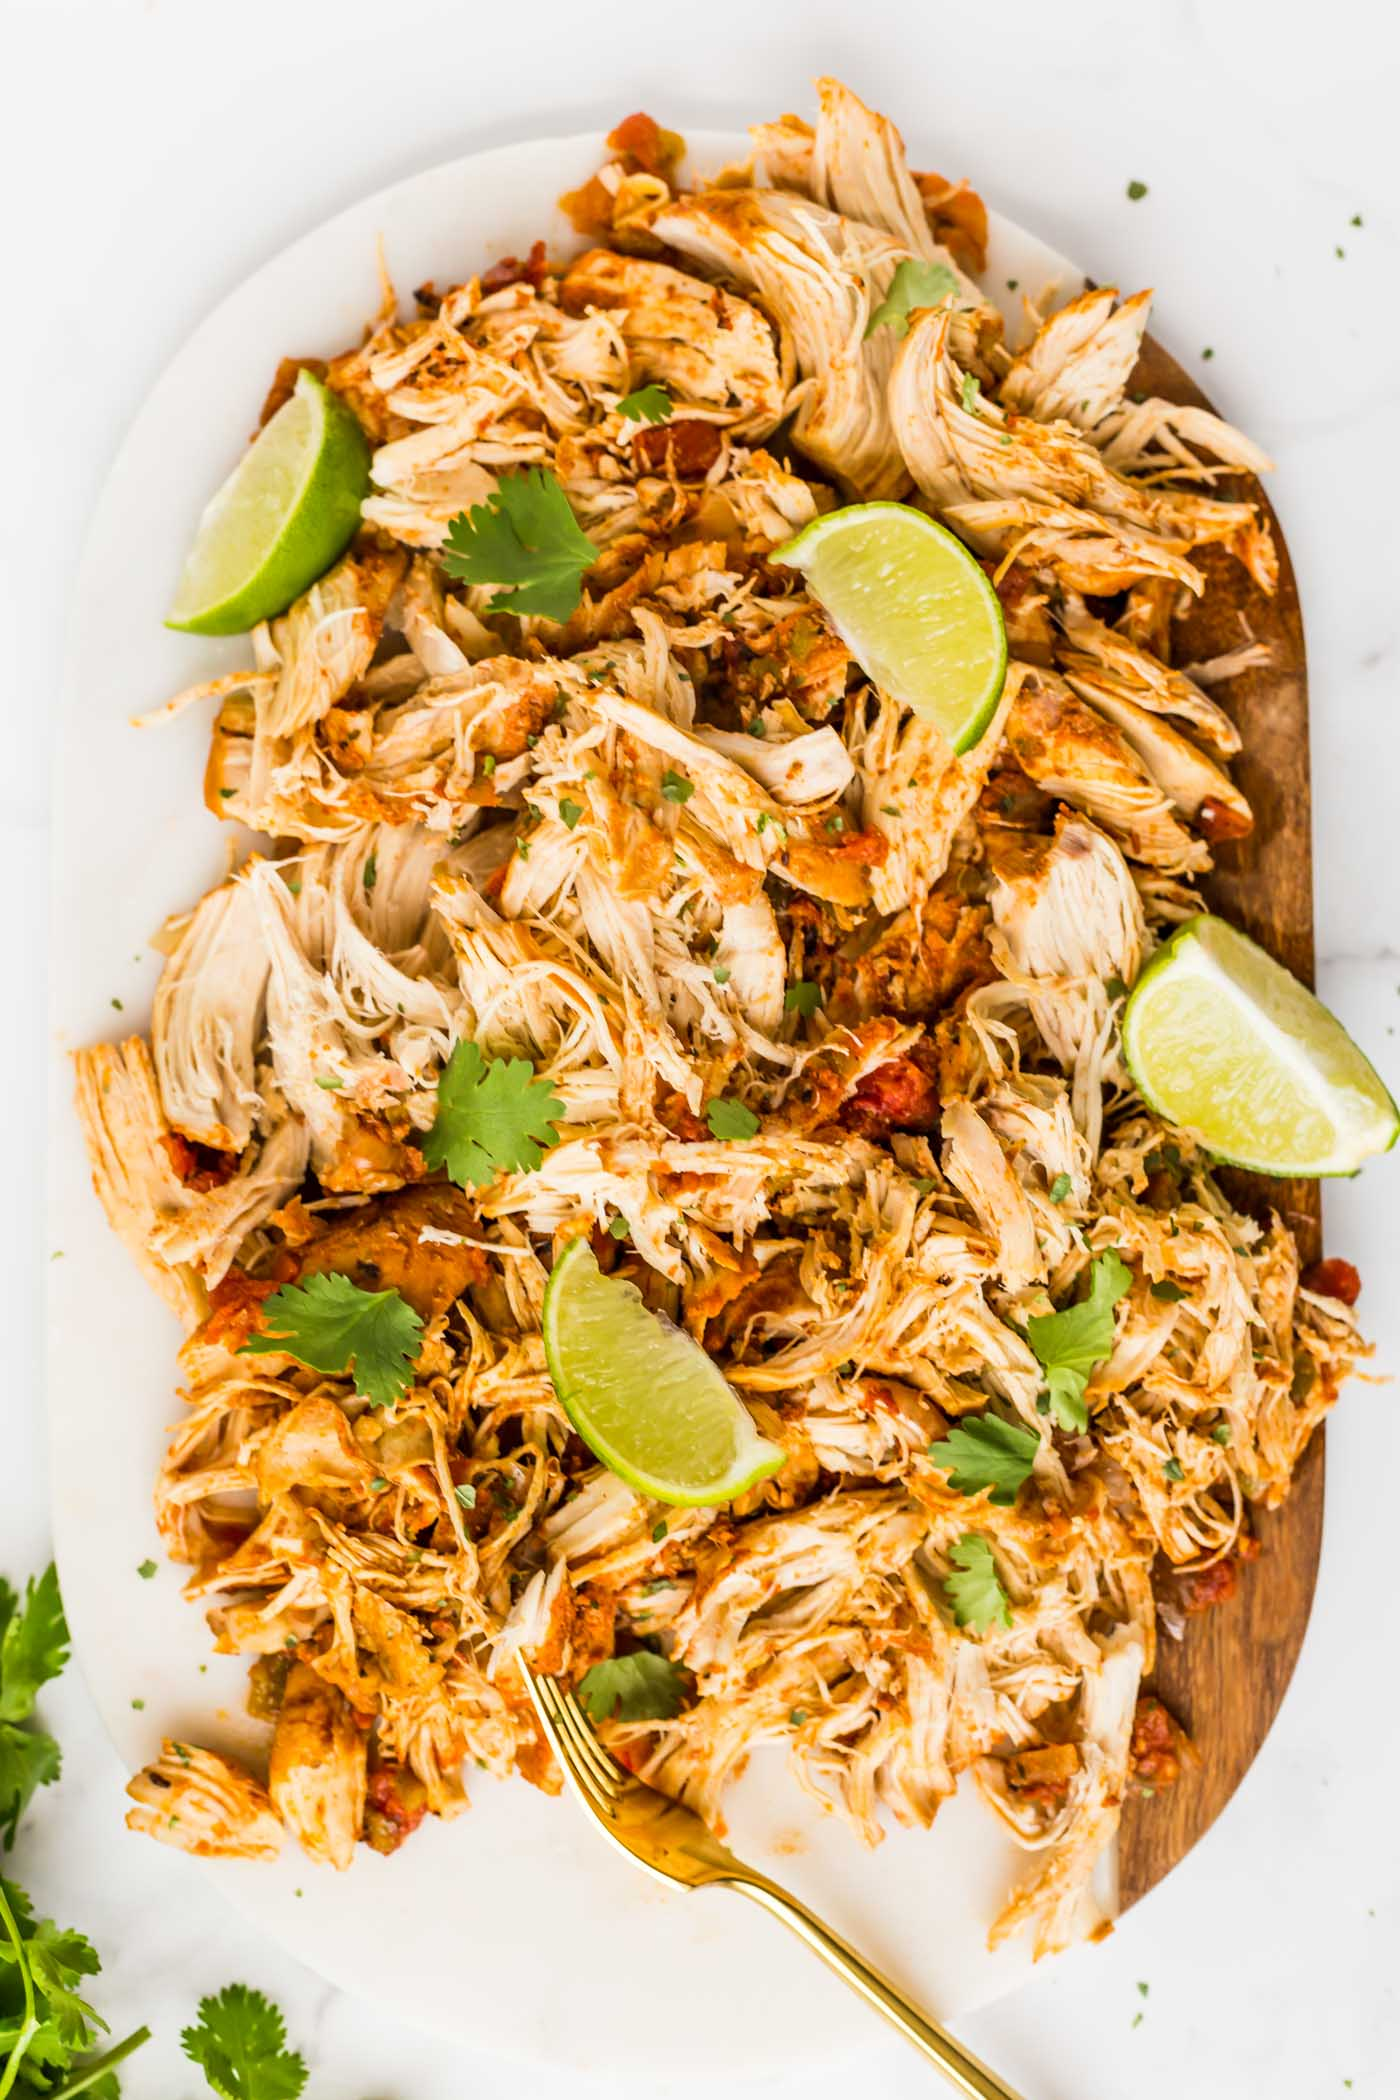 Shredded Mexican Chicken Garnished with Cilantro and sliced limes on cutting board on top of white background